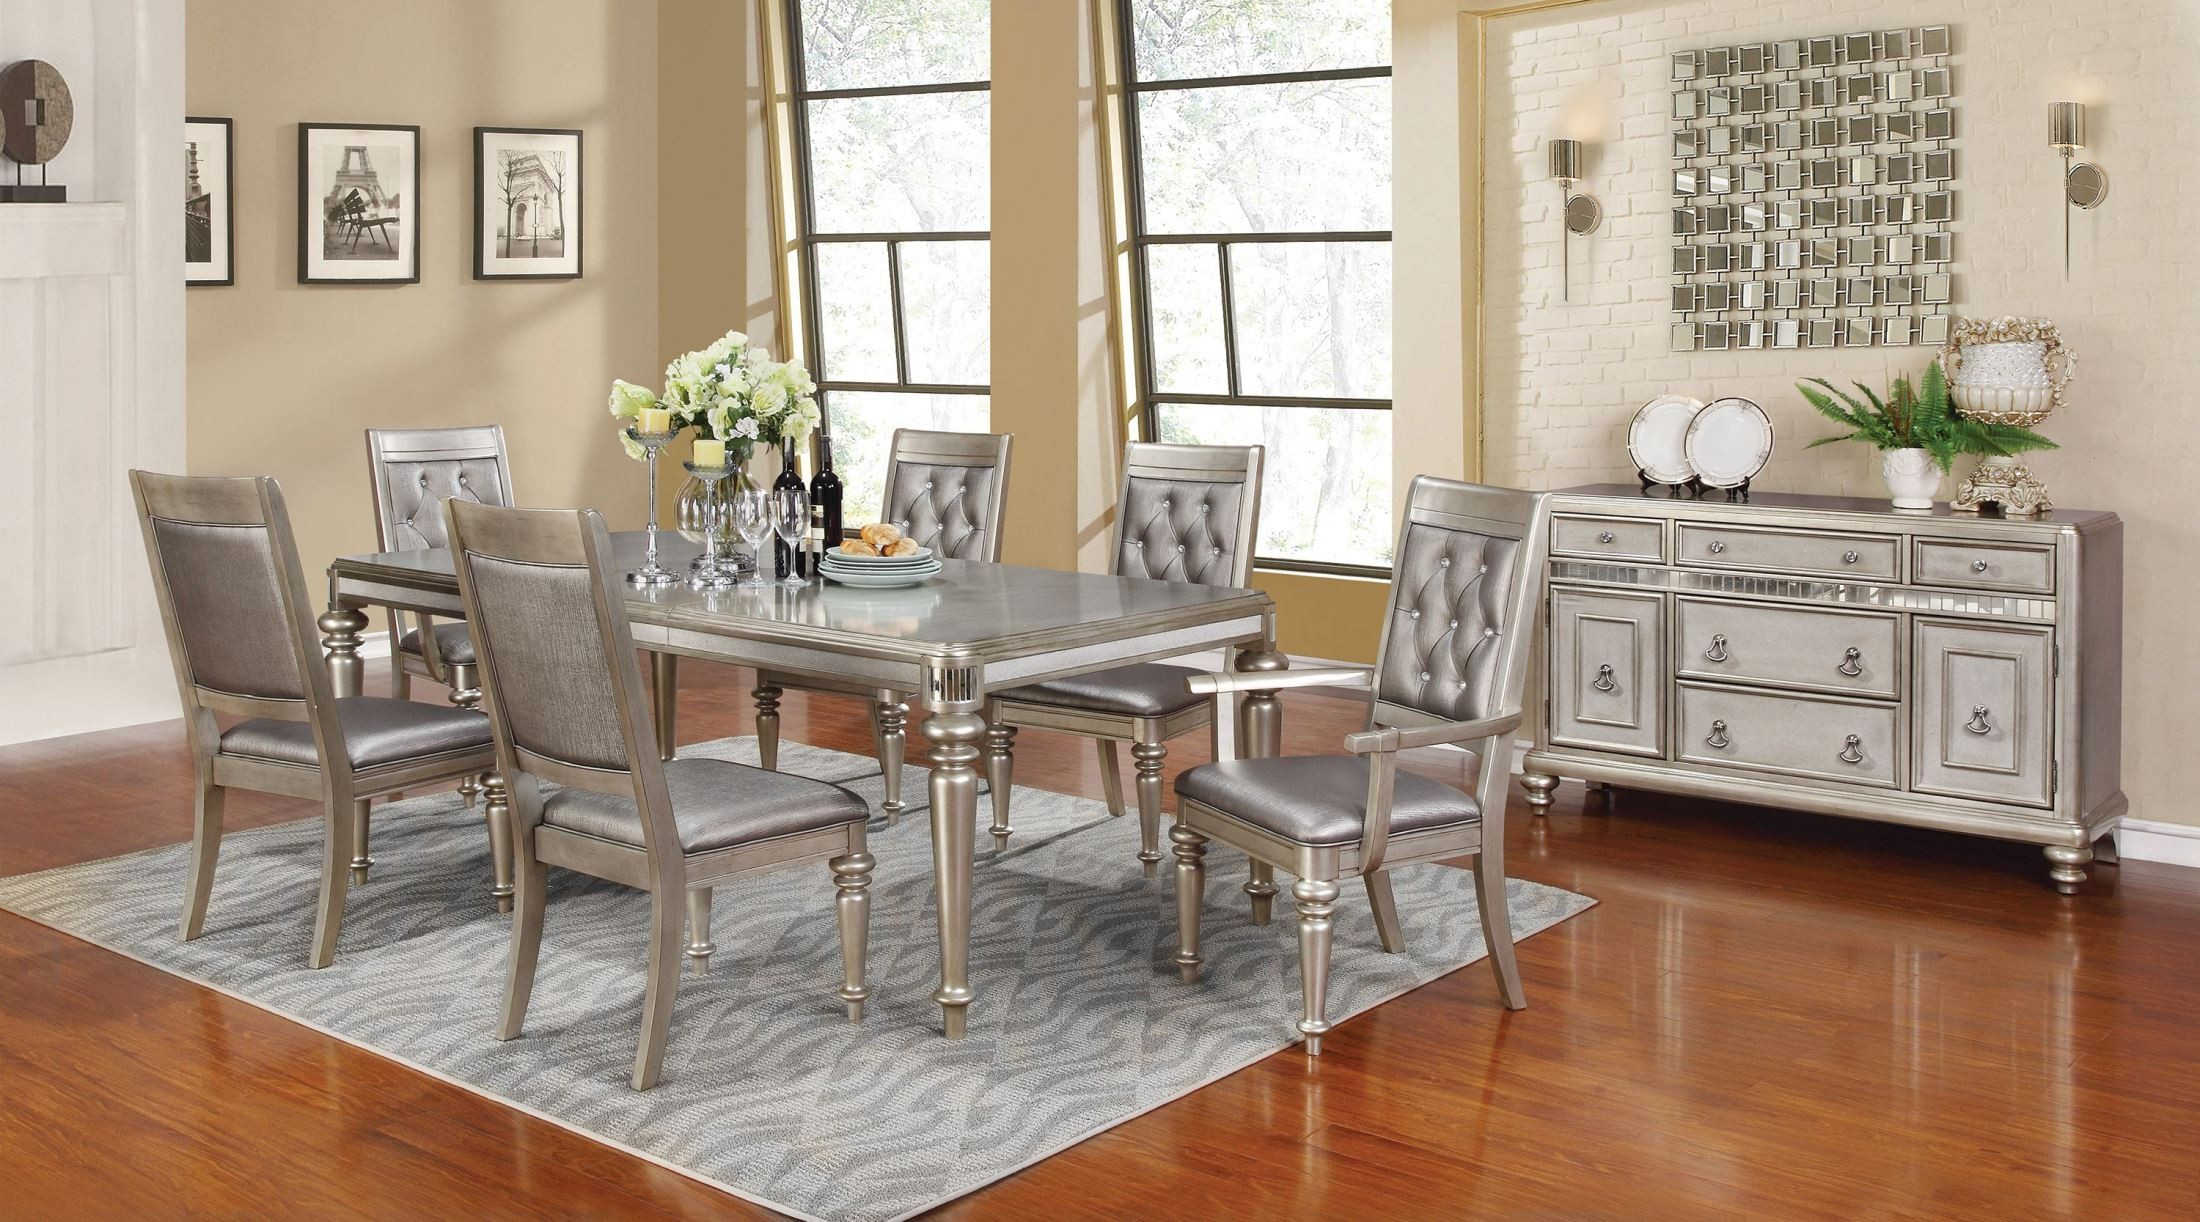 Great Coaster Furniture. 1669336. Danette Metallic Platinum Rectangular Dining  Room Set764679